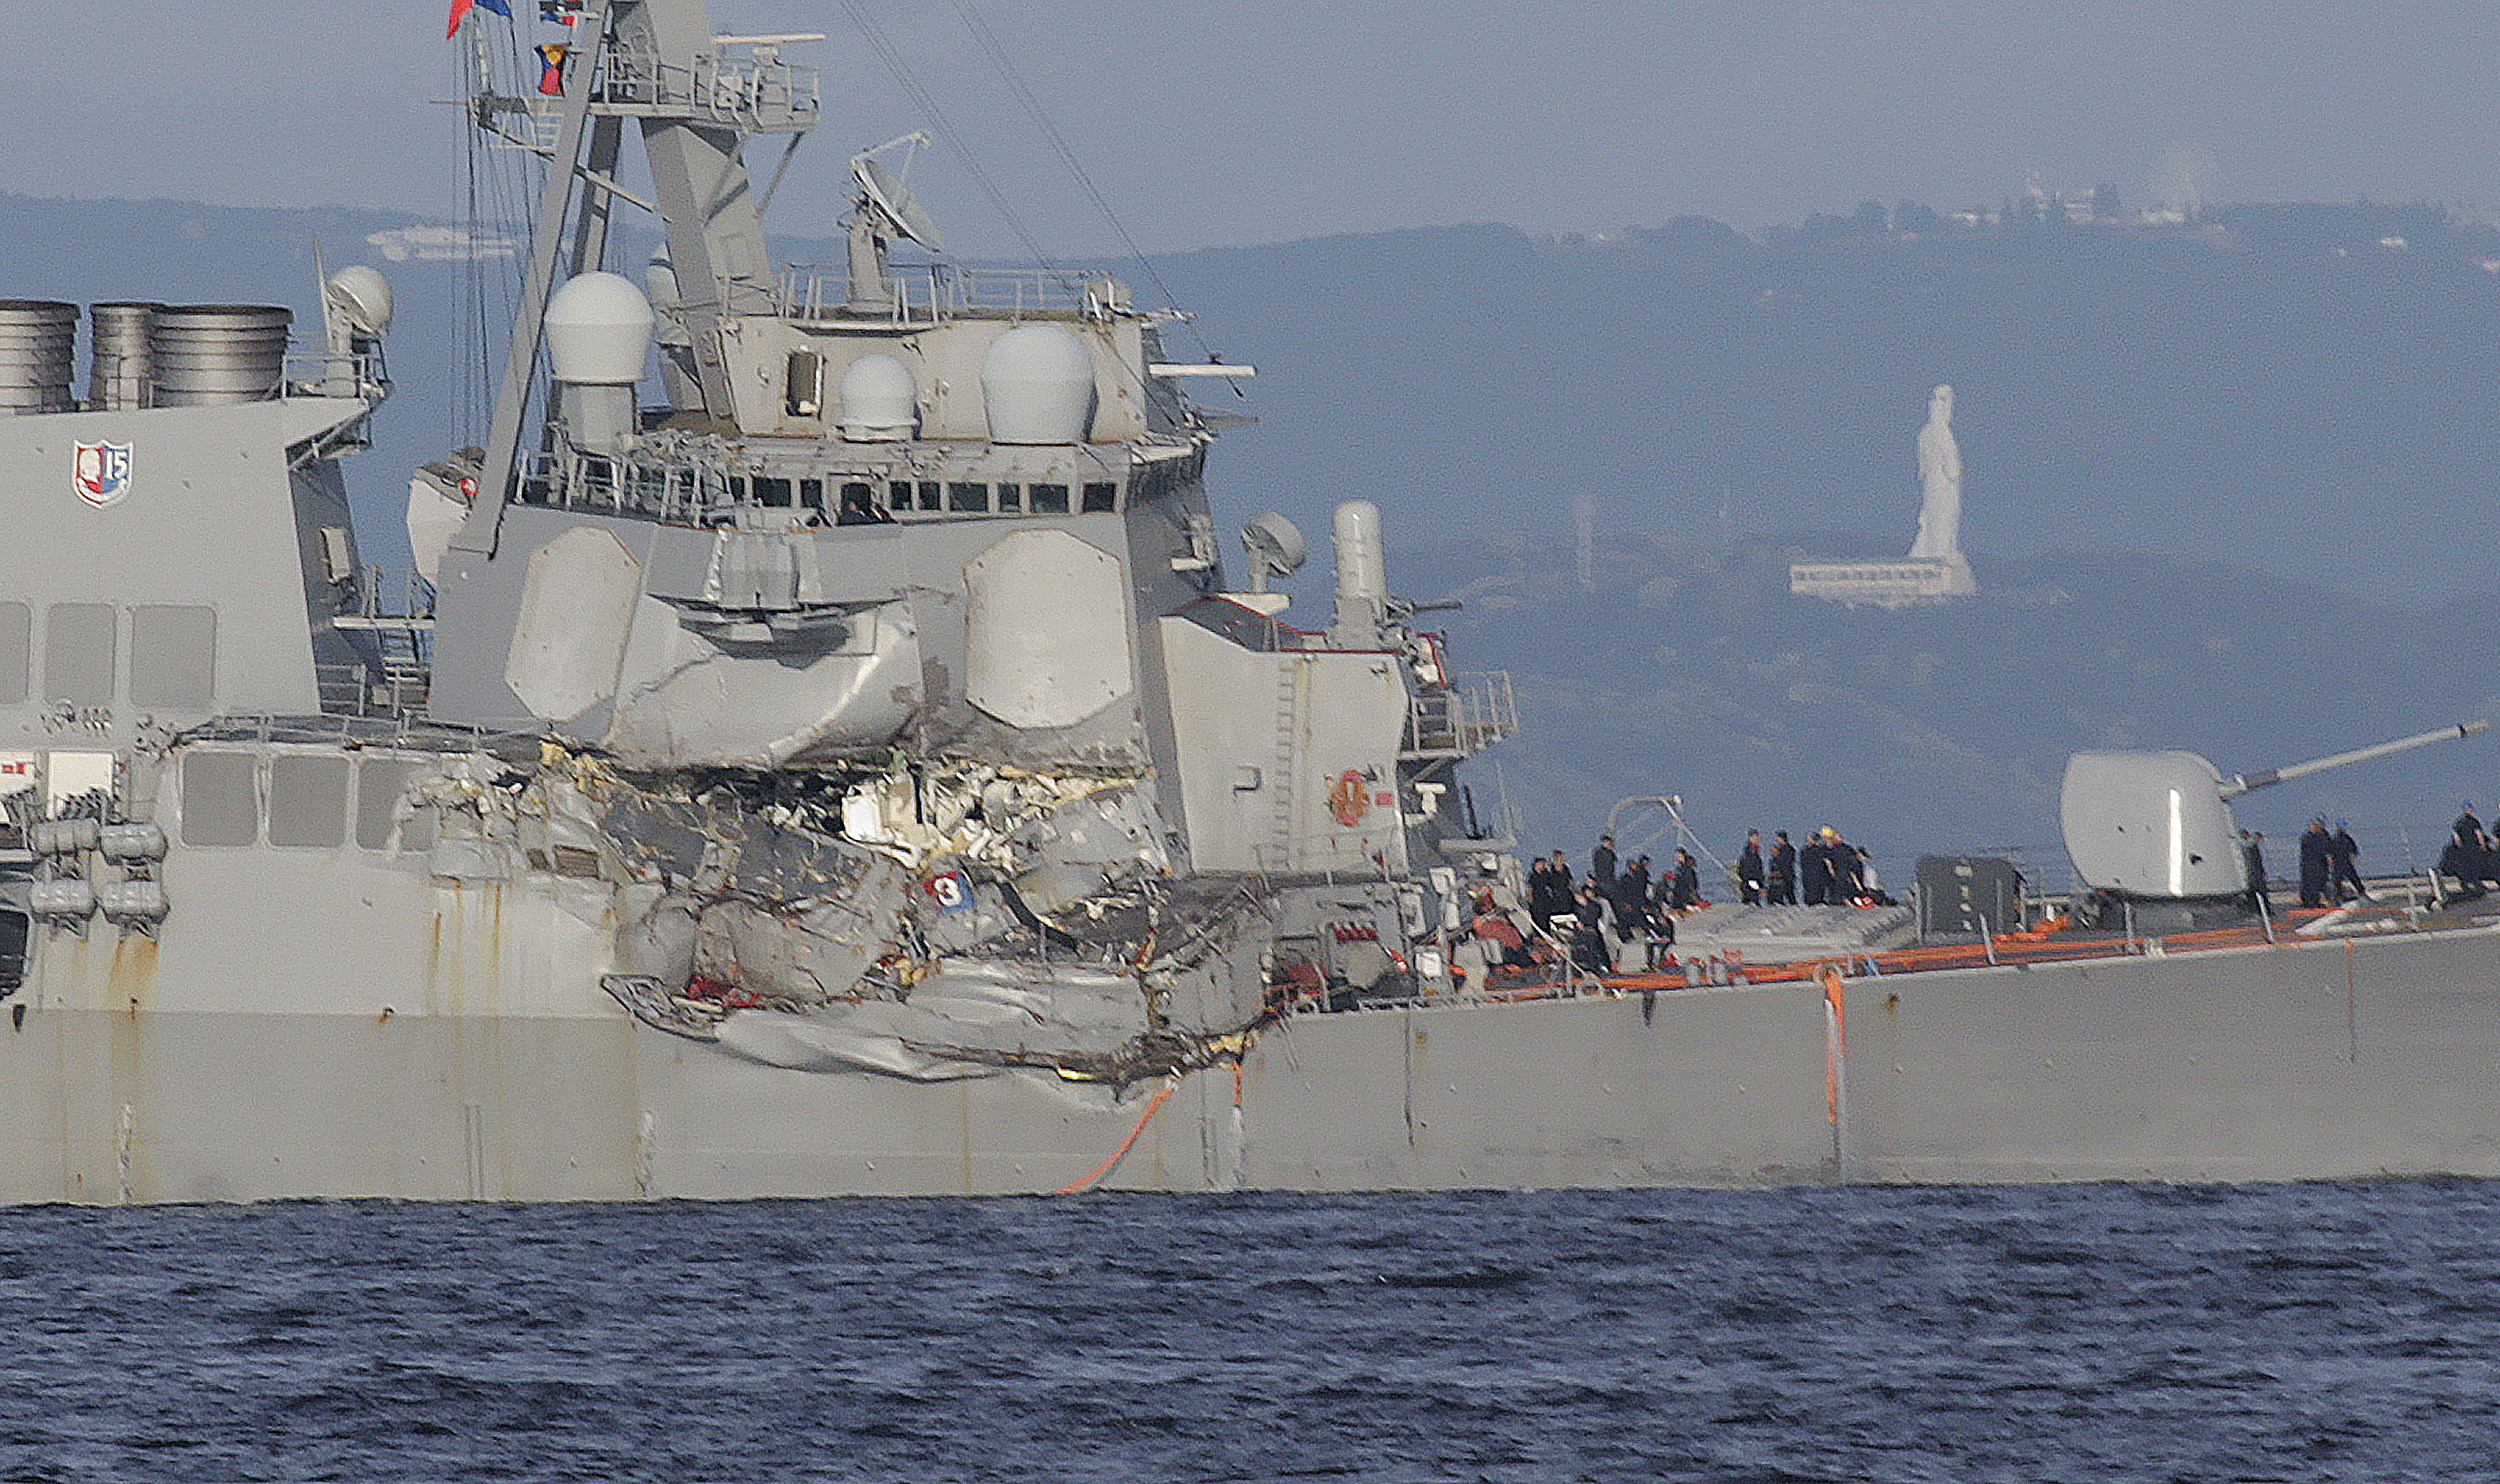 Seven US sailors missing after Navy destroyer collision off Japan coast